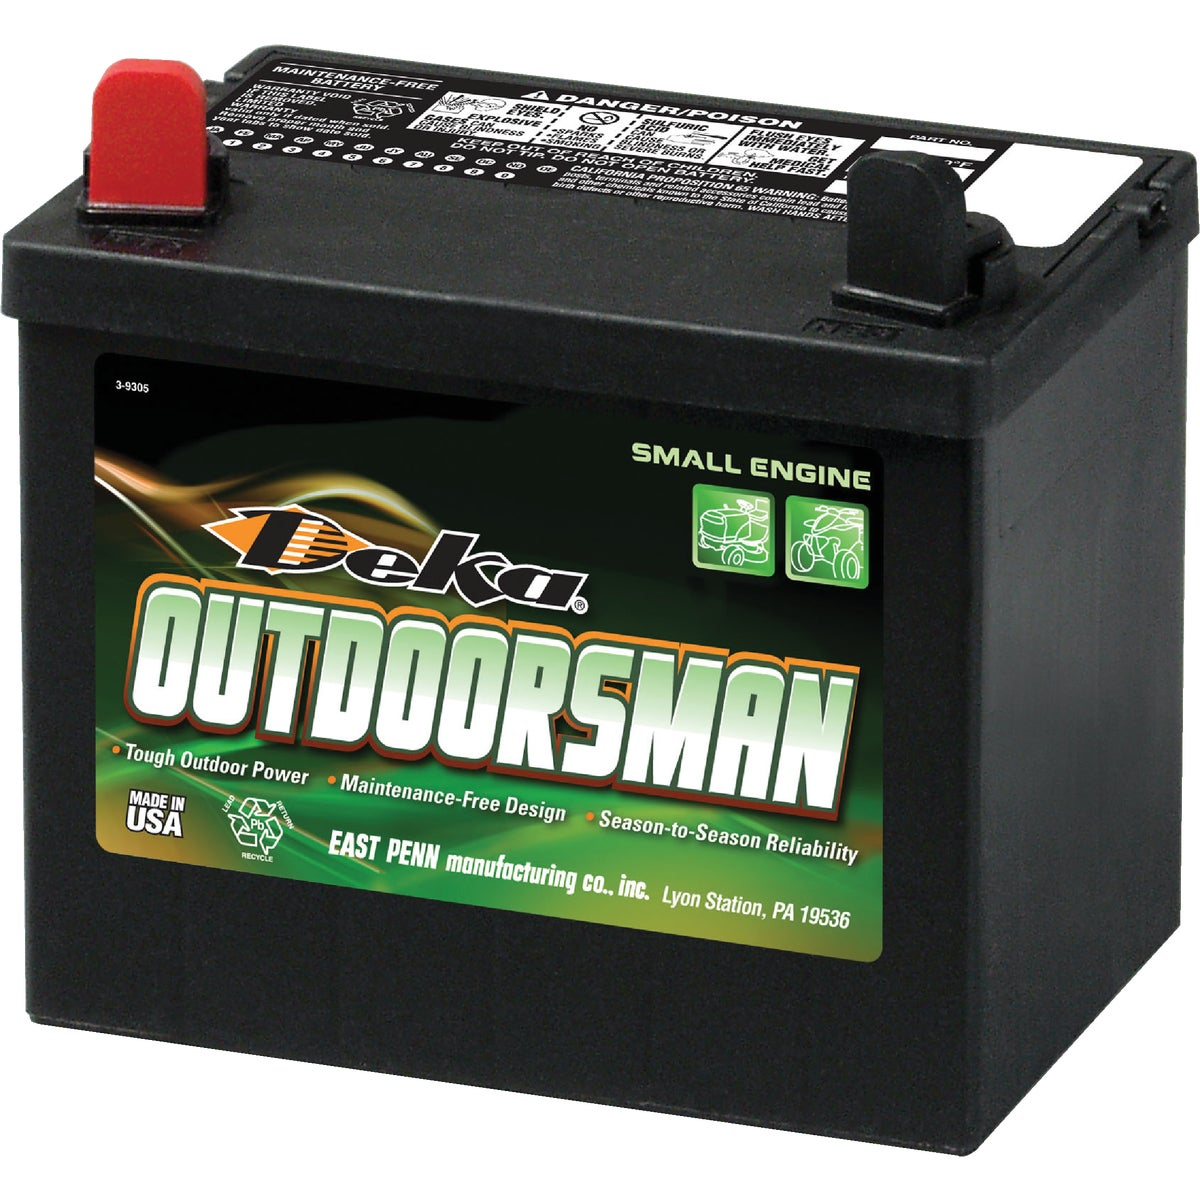 12V SMALL ENGINE BATTERY - GTH by East Penn Mfg. Co.